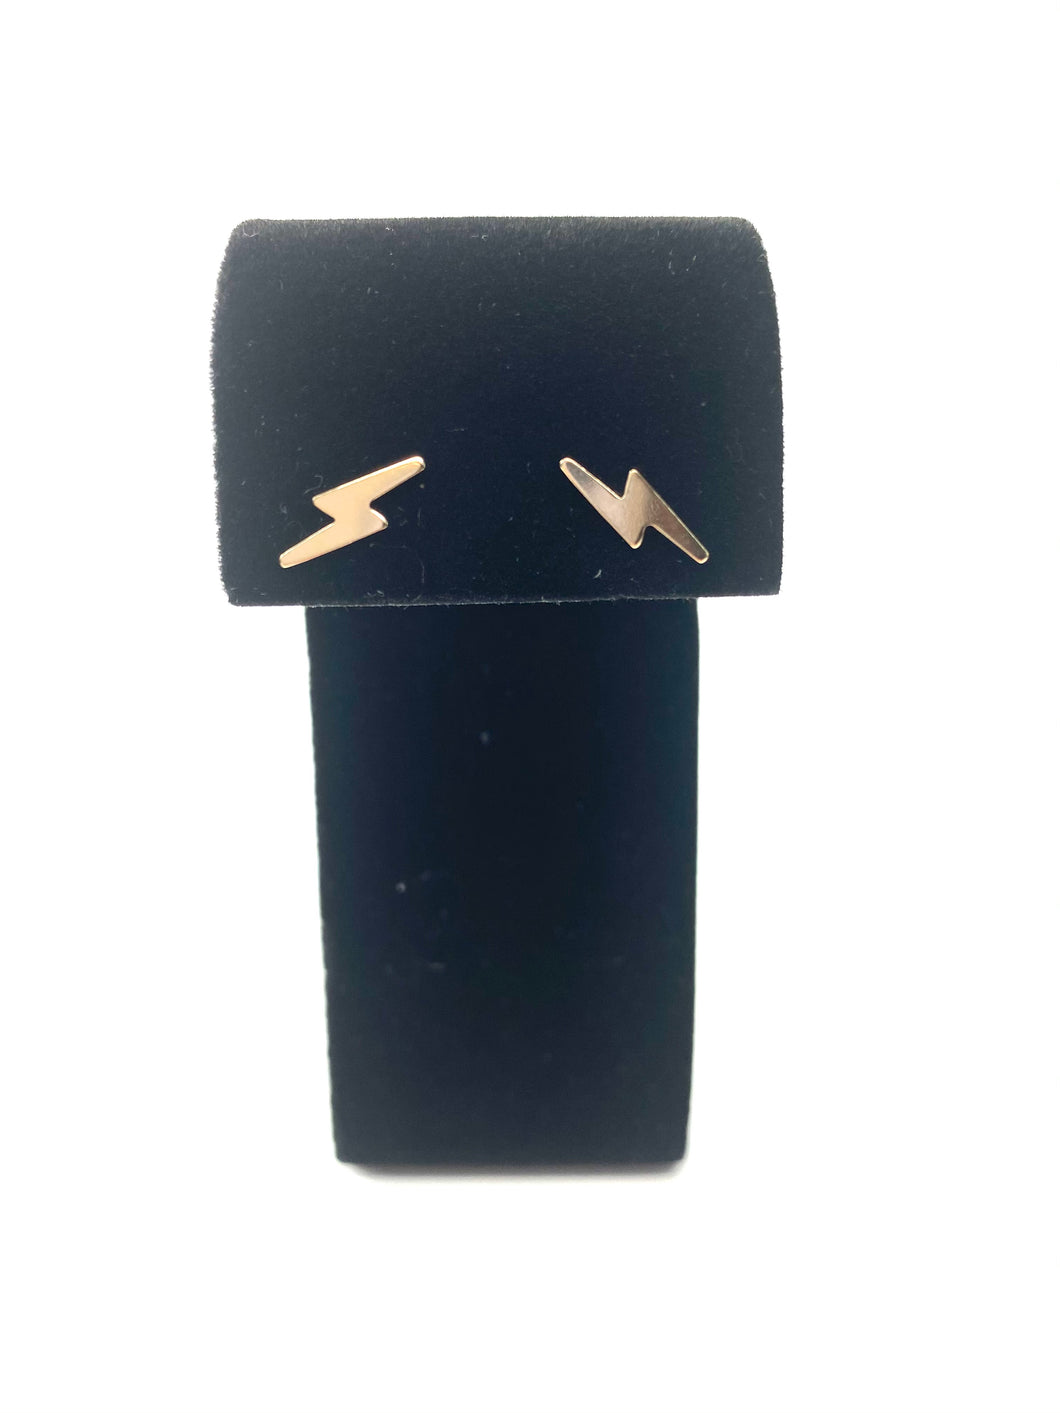 14KGF lightning bolt studs, 14K gold filled